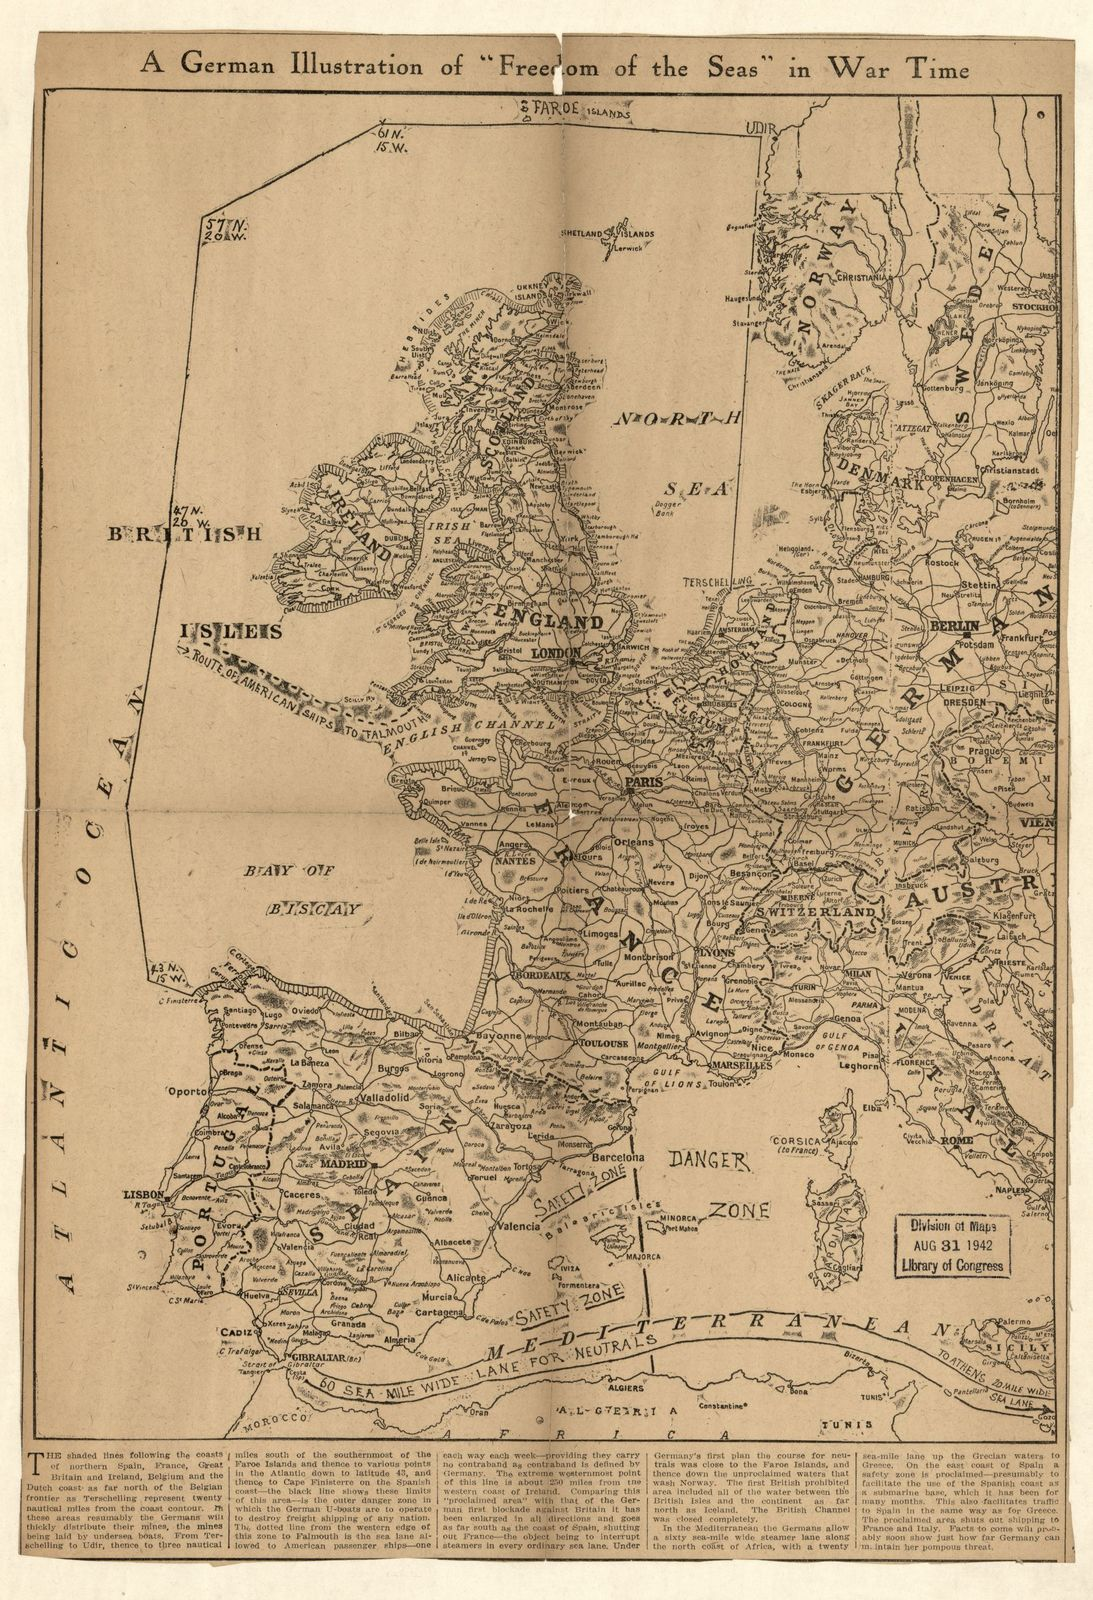 """A German illustration of """"freedom of the seas"""" in war time : [Western Europe and western Mediterranean Sea]."""